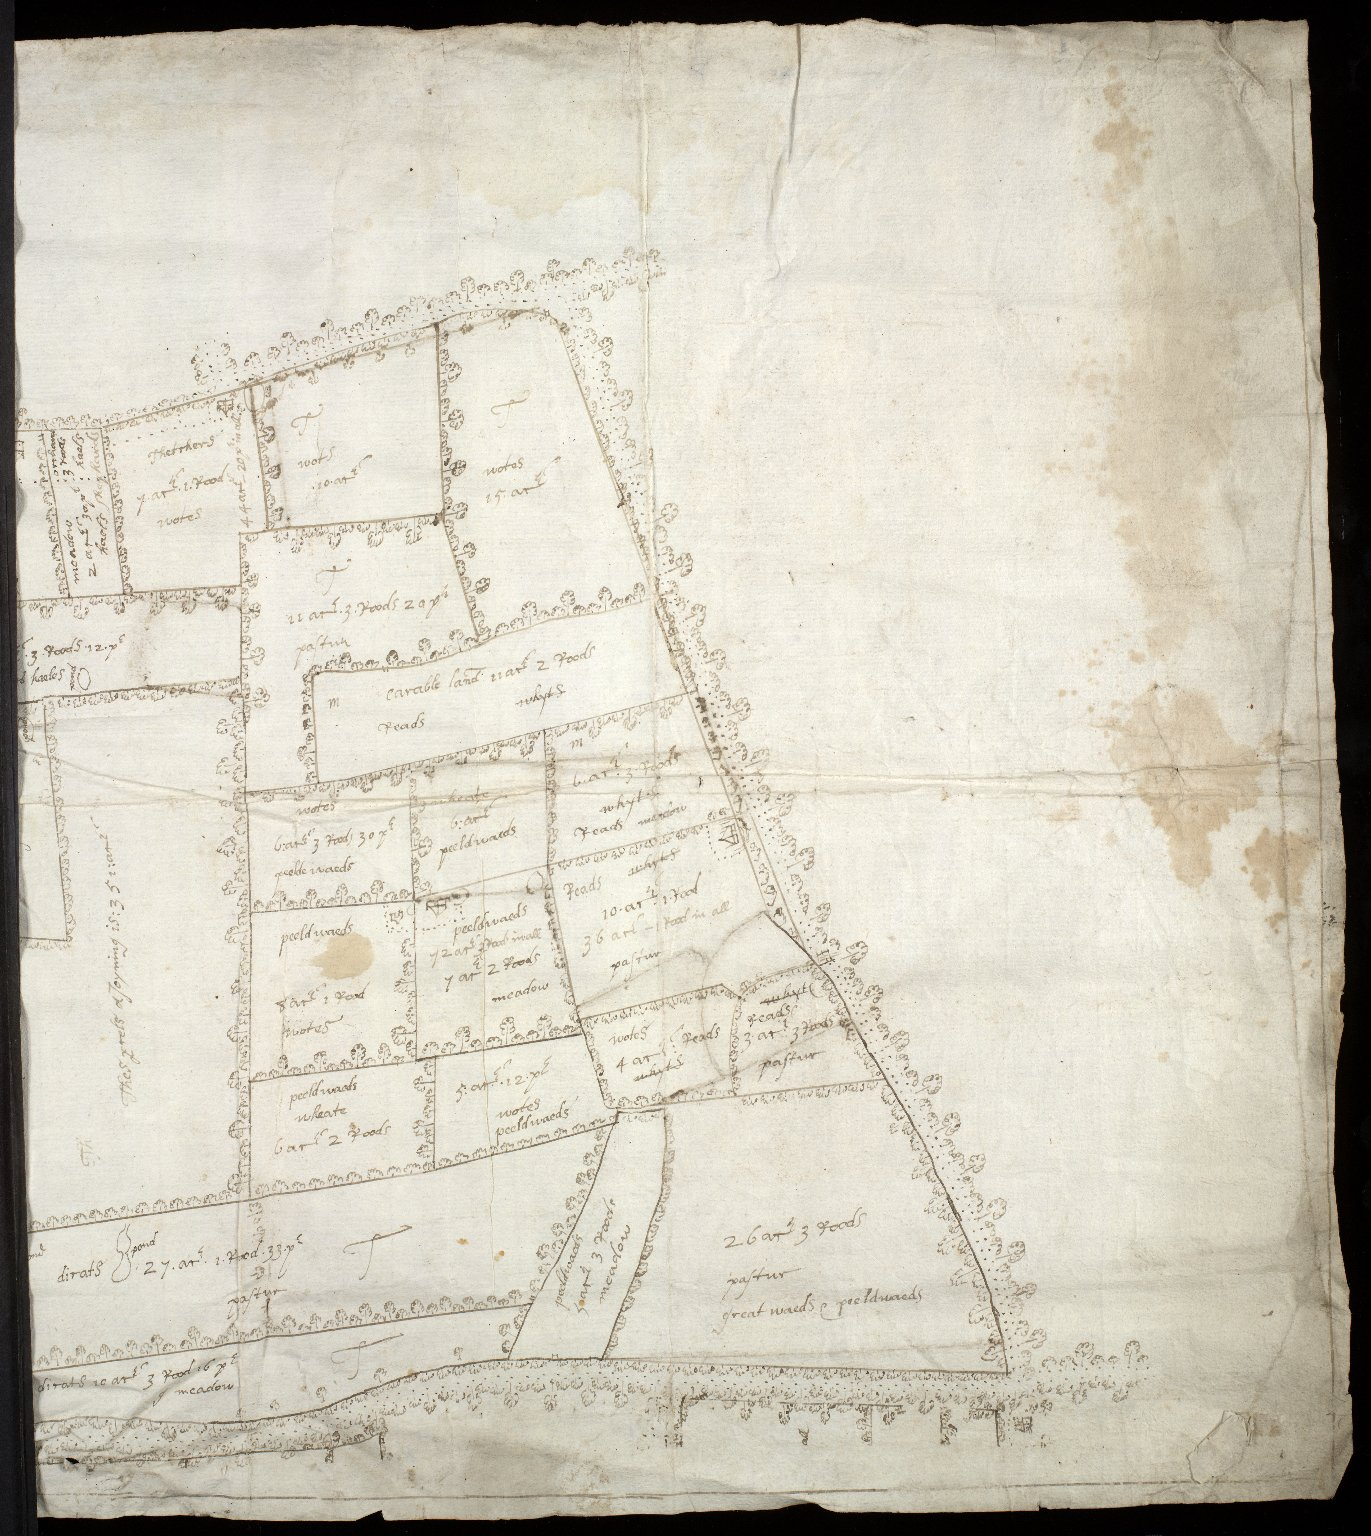 [Plan of the estate of Sir Alex. Cumming of Culter, c. 1702-25] [2 of 2]